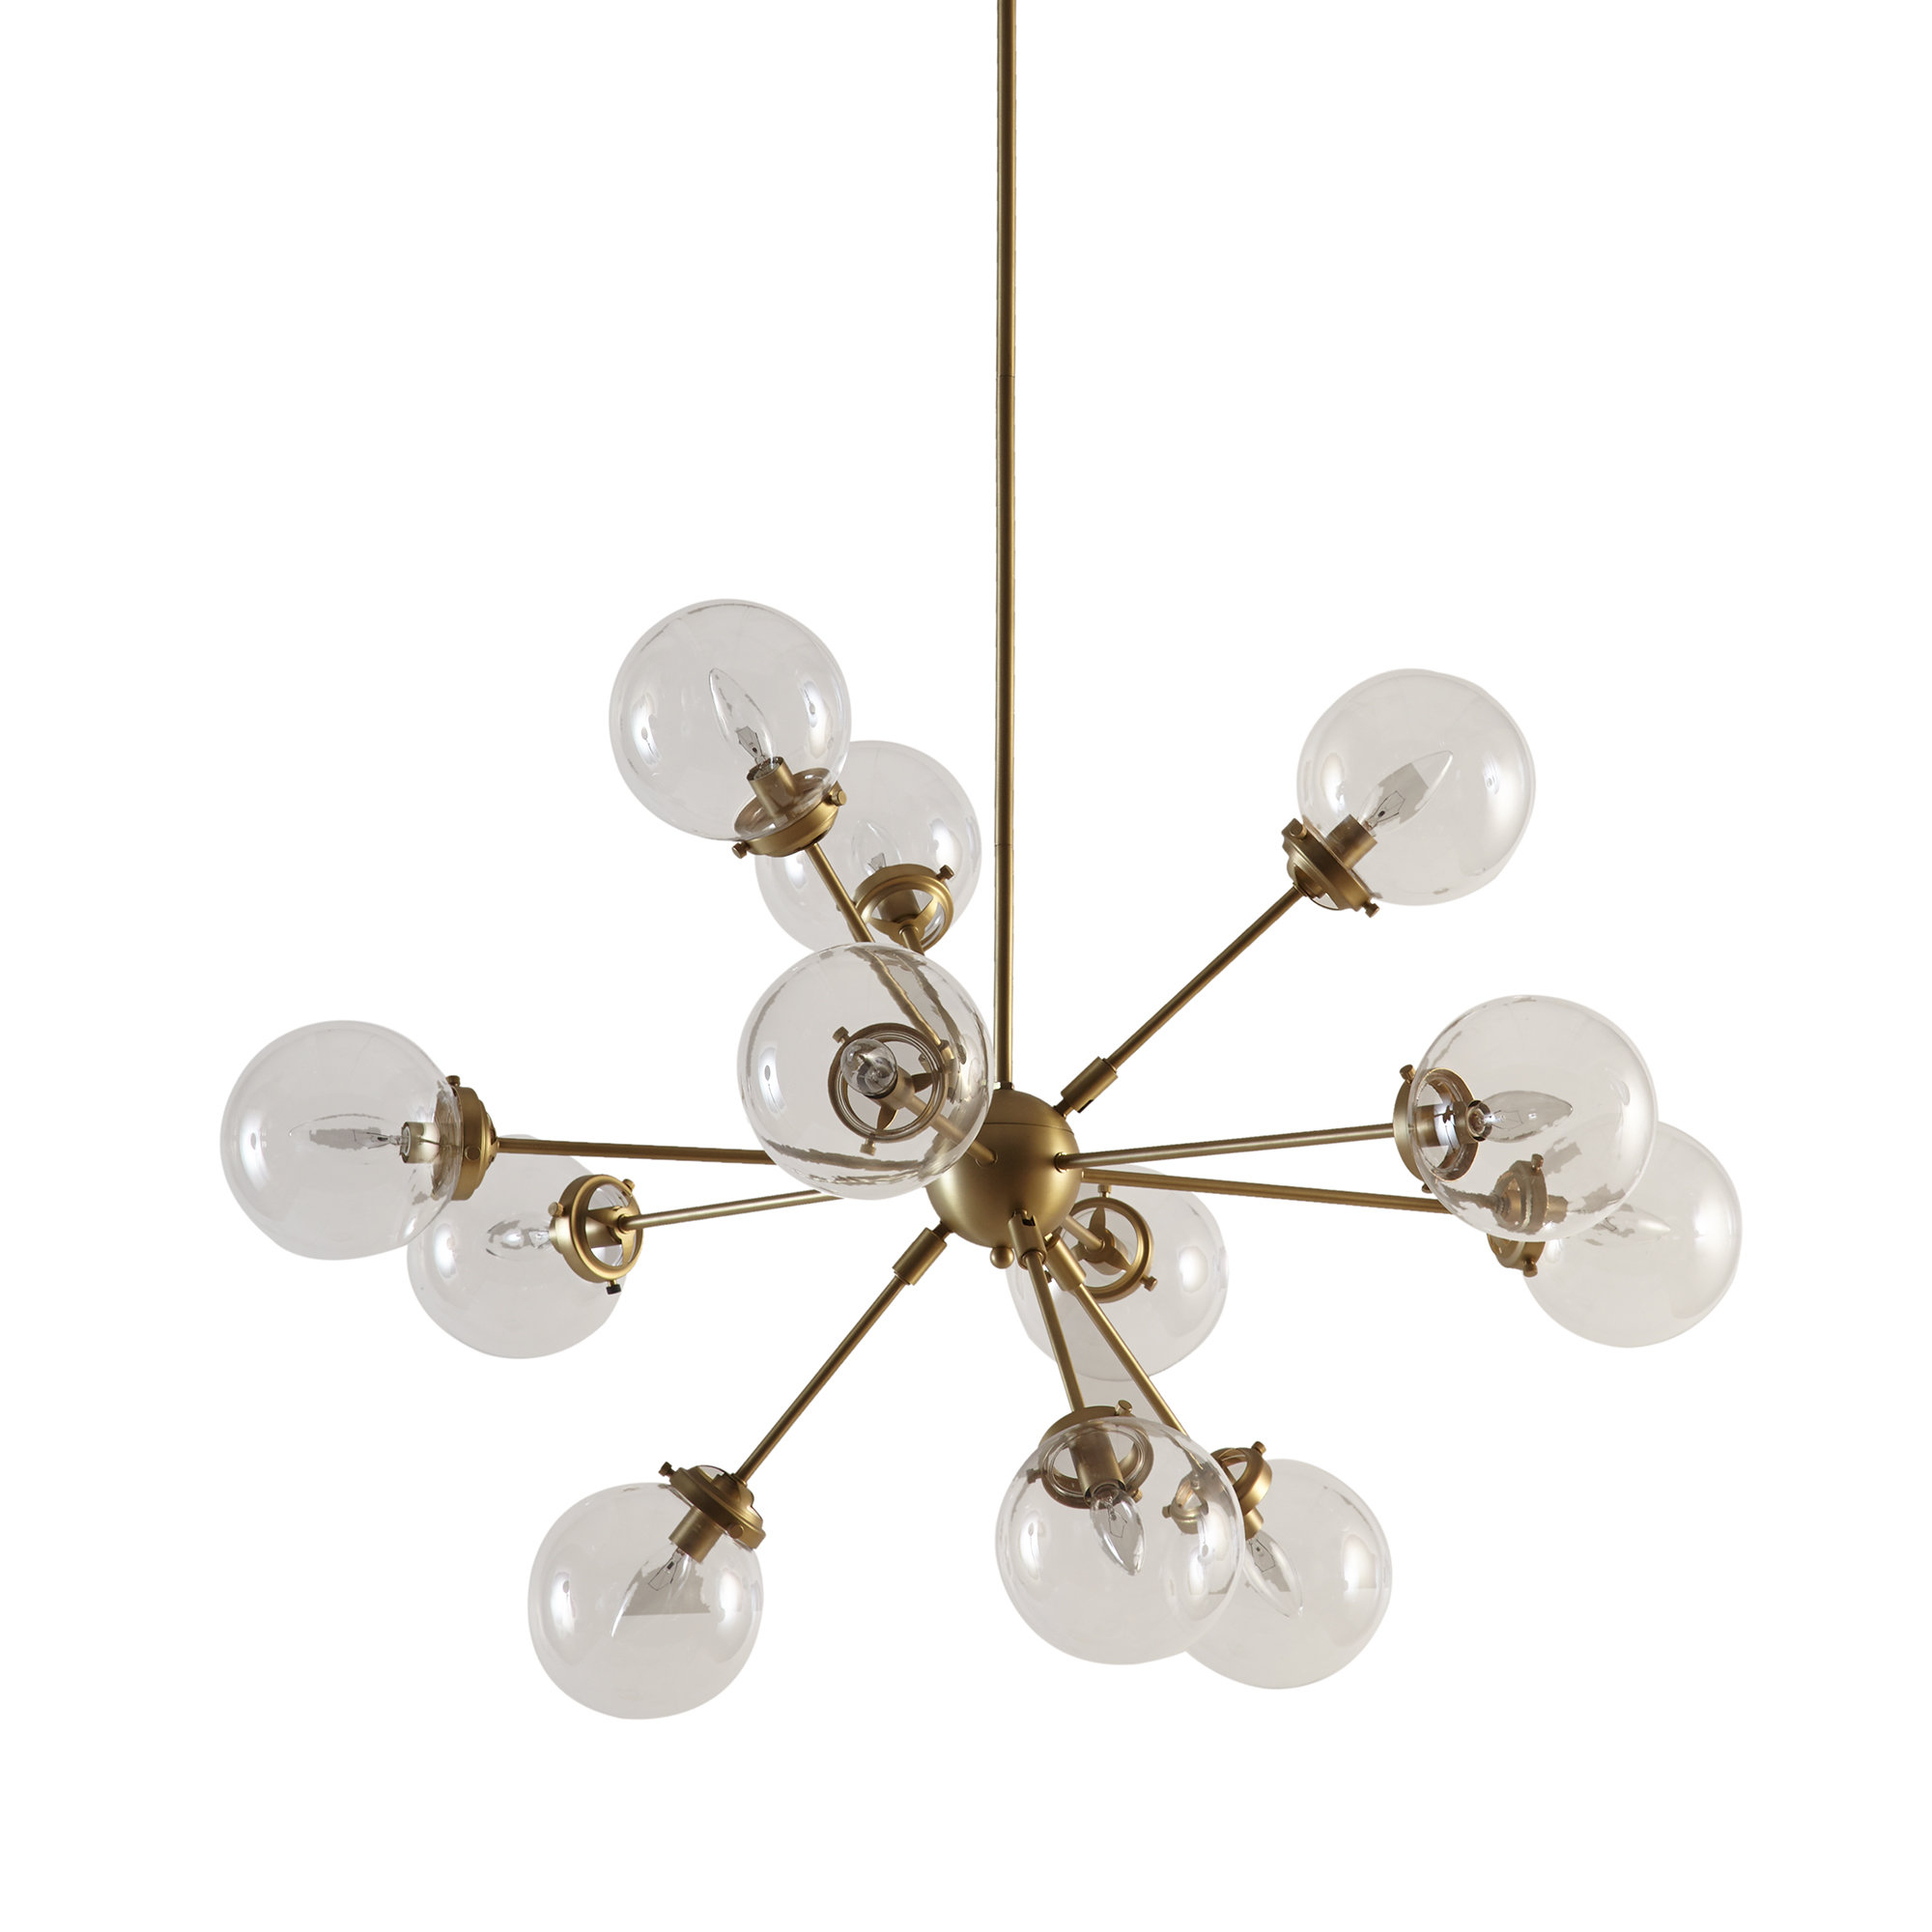 Widely Used Modern Rustic Interiors Asher 12 Light Sputnik Chandelier With Defreitas 18 Light Sputnik Chandeliers (View 25 of 25)